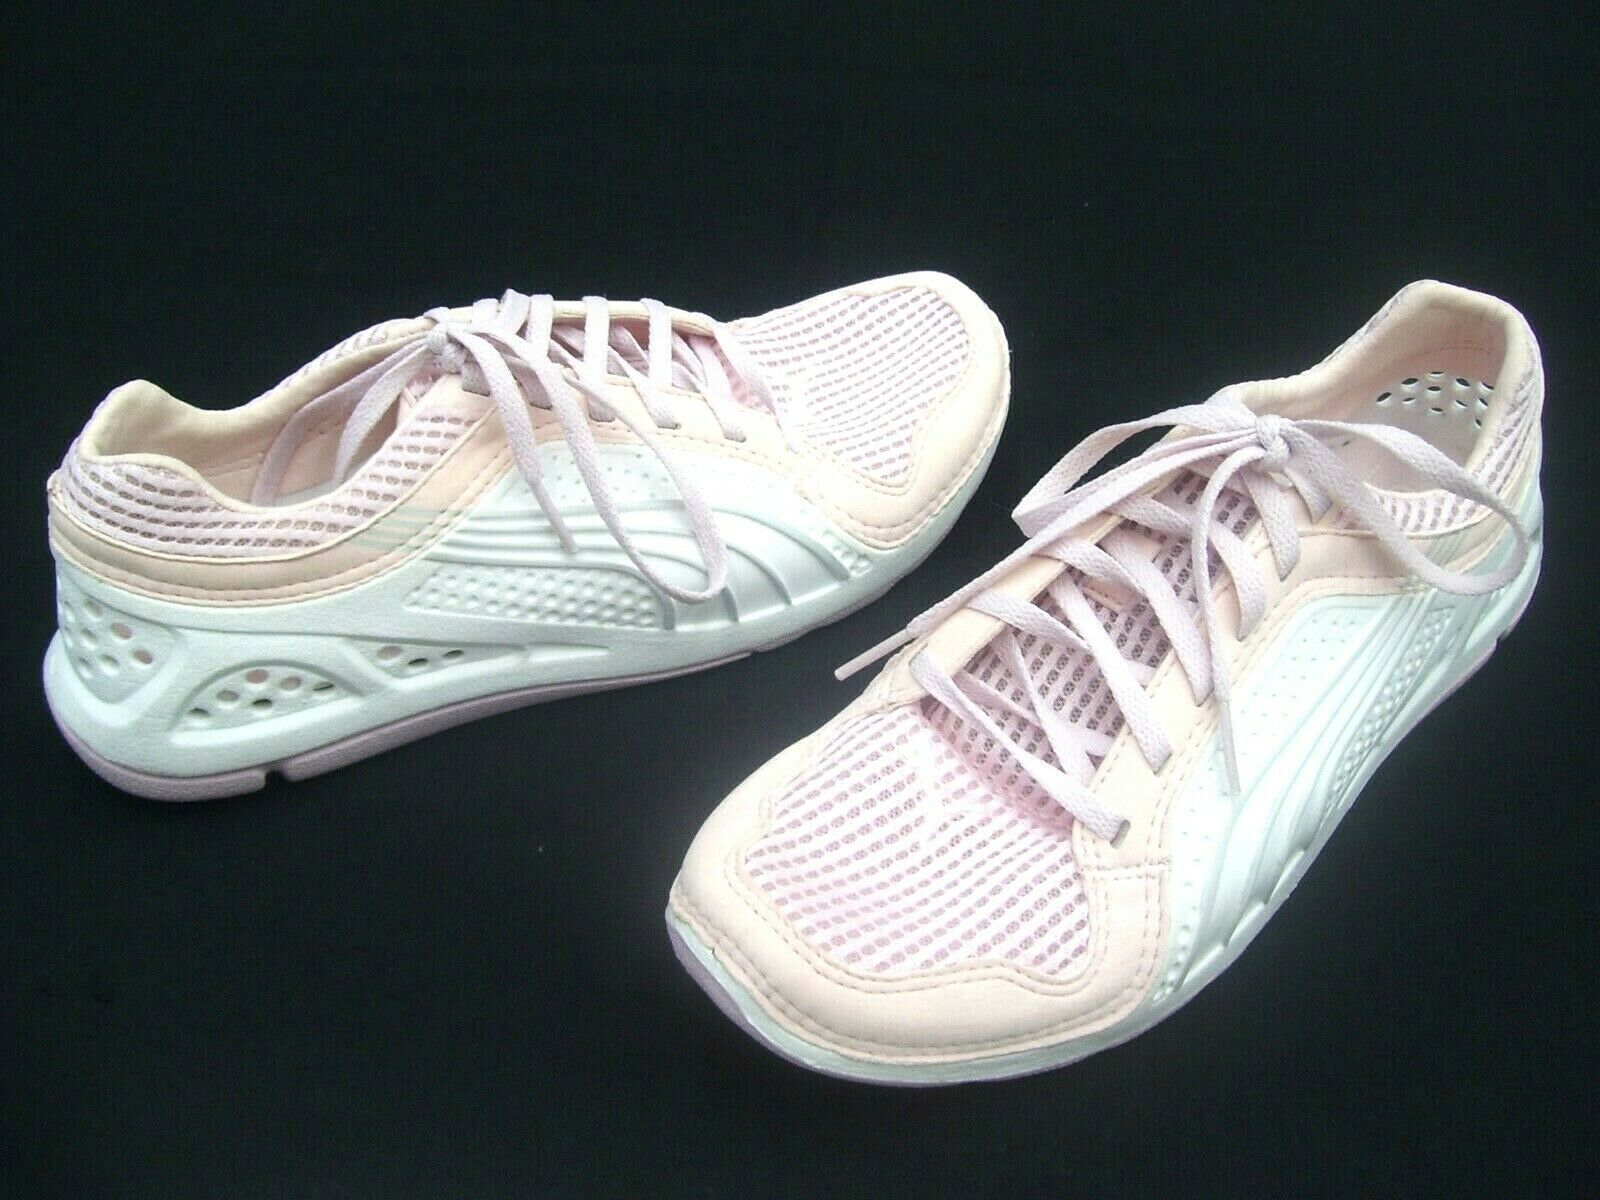 PUMA femmes RUNNING TRAINERS LADIES CASUAL blanc chaussures L.I.F.T LIFT RACER Taille 9